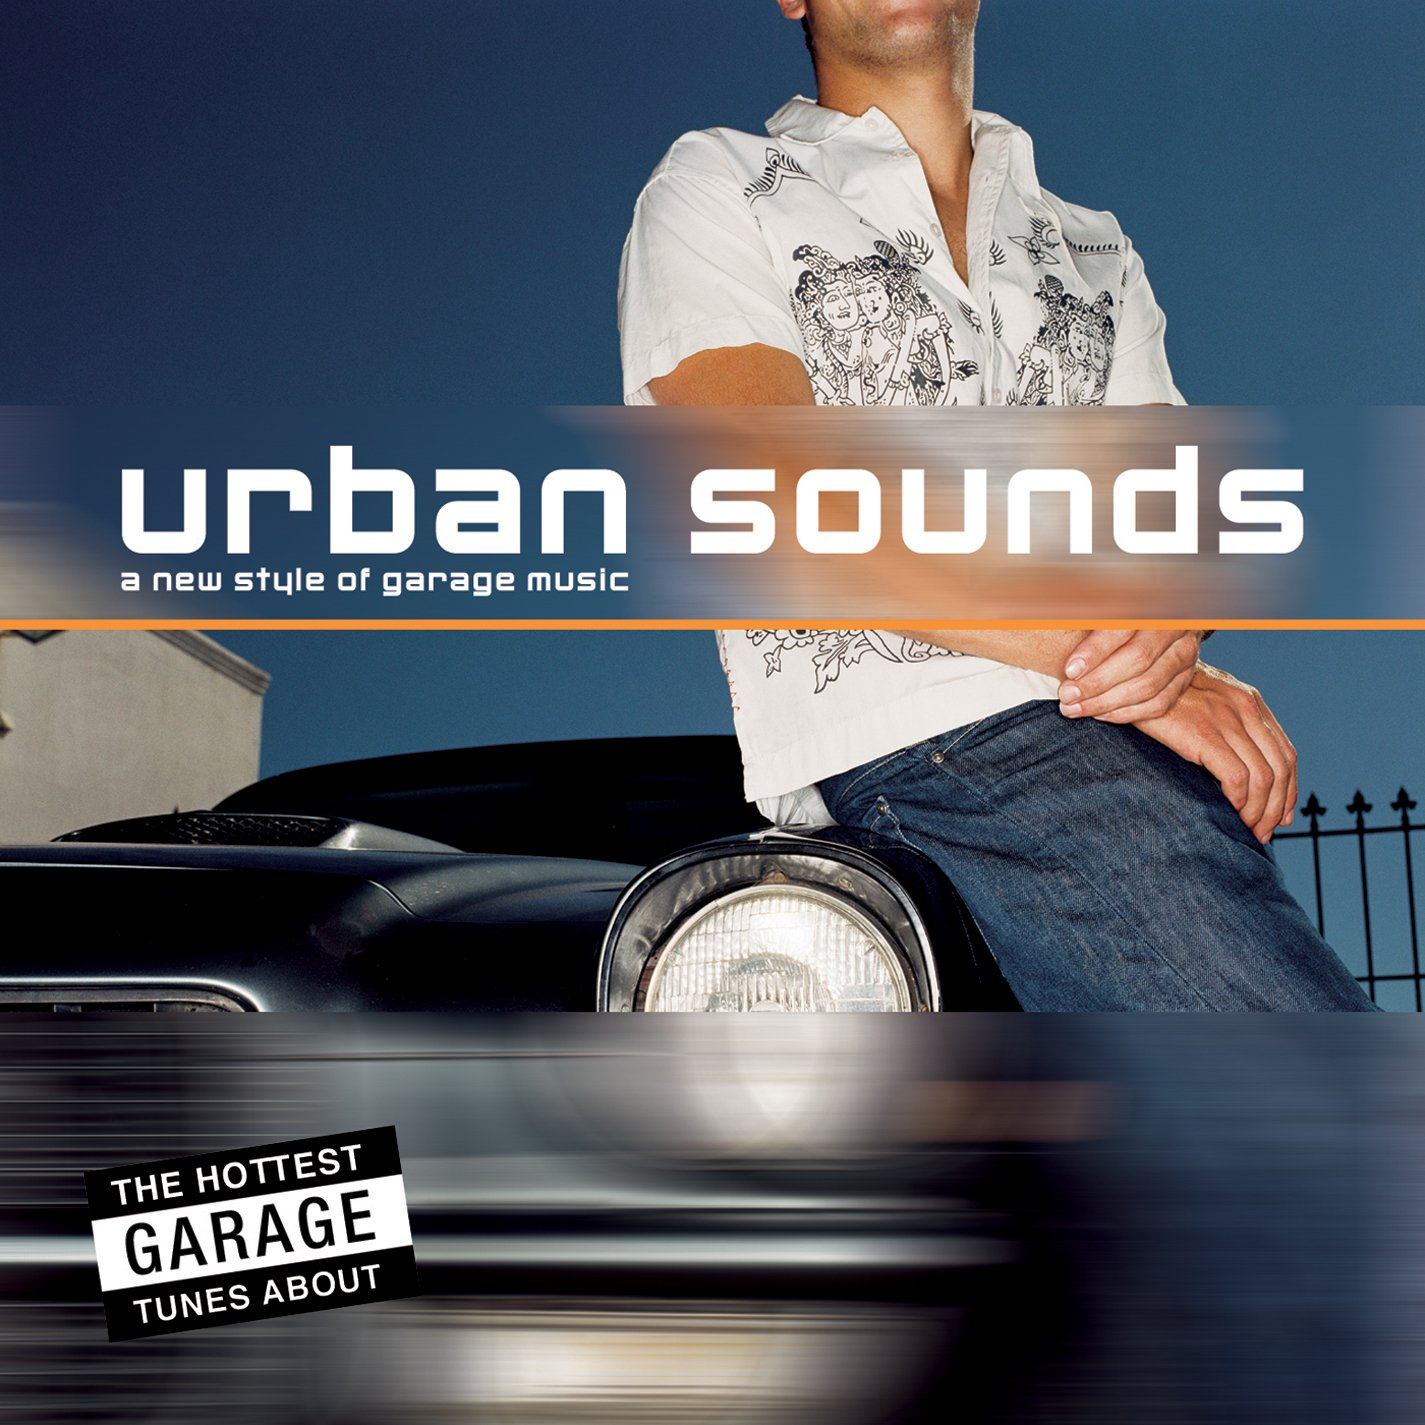 CD : VARIOUS - Urban Sounds: A New Style Of Garage Music / Various (CD)